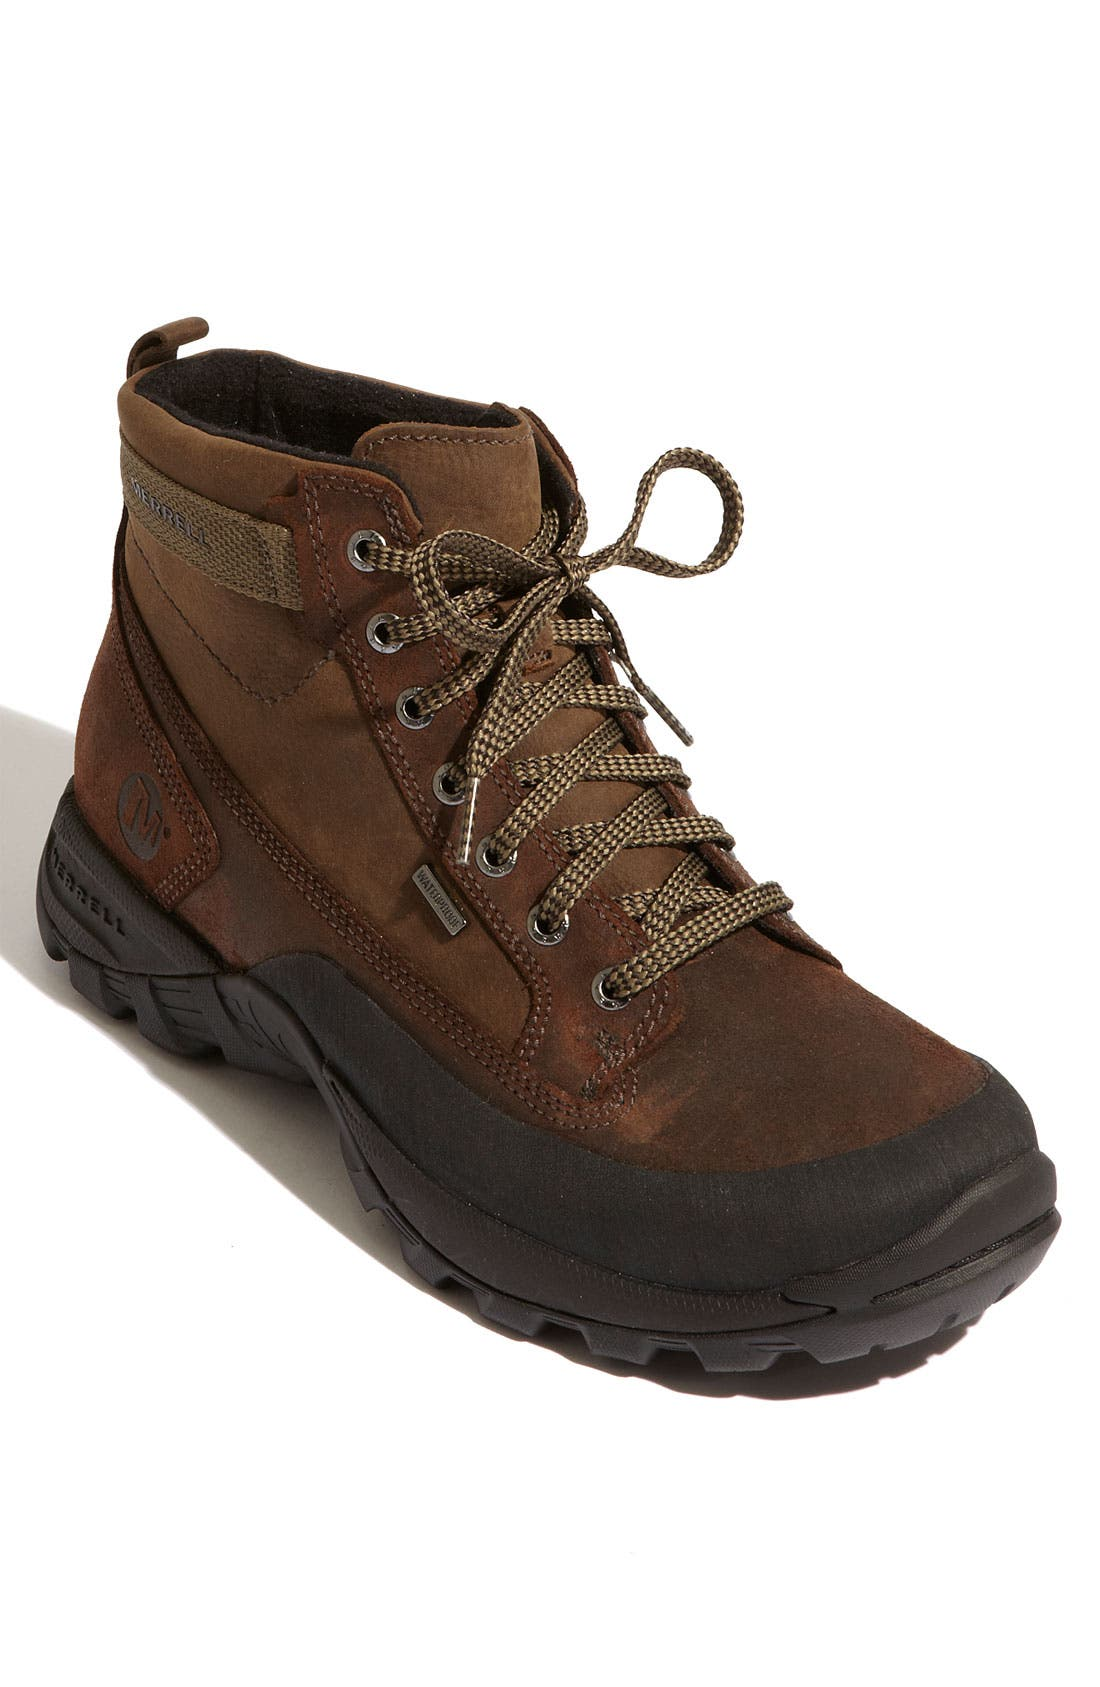 Alternate Image 1 Selected - Merrell 'Graz' Waterproof Boot (Online Only)